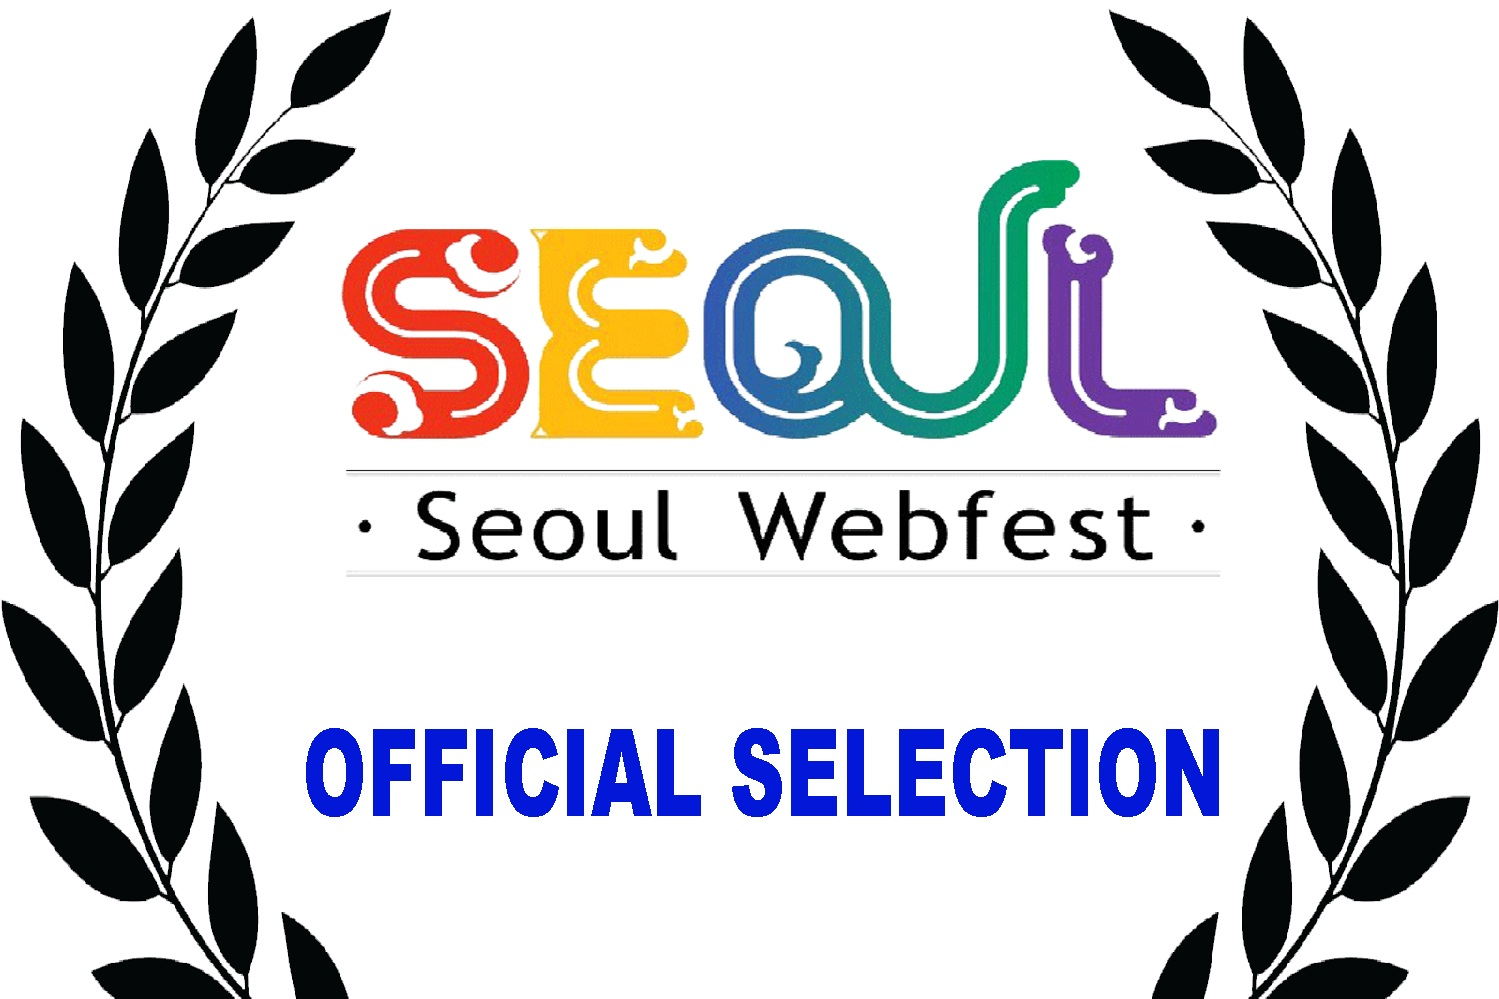 Officially Selected for Seoul Webfest - LEARN MORE